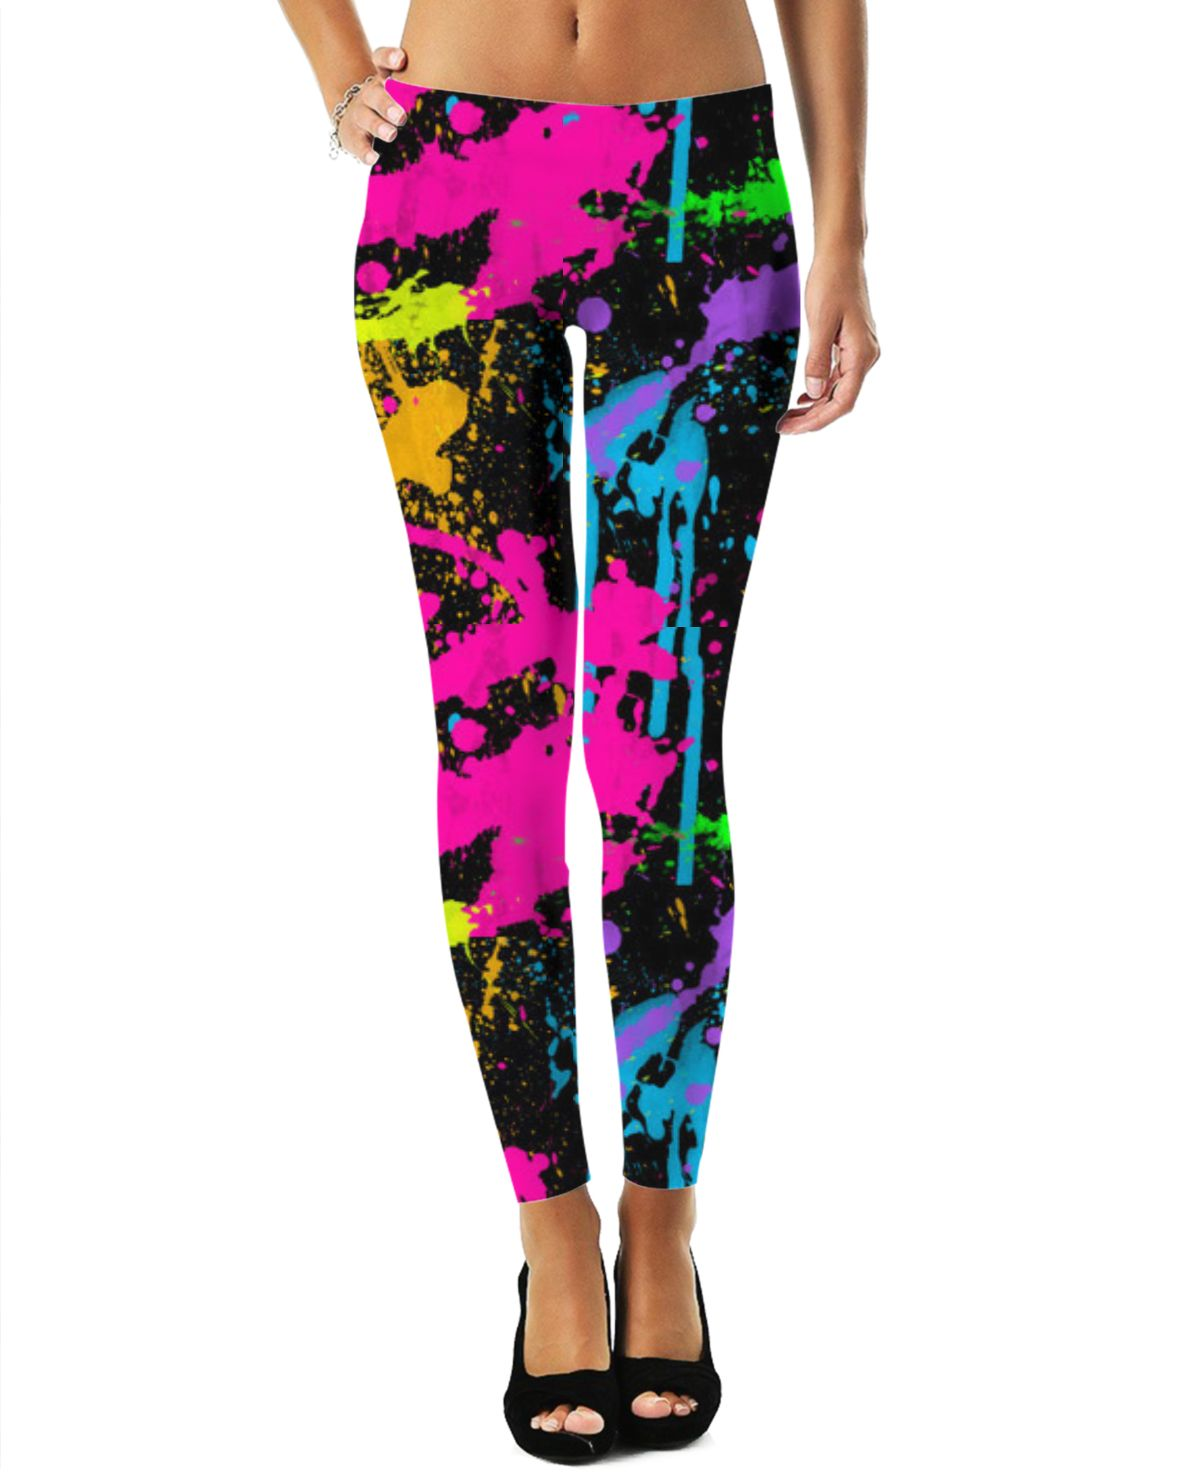 d83e1827ca9c0 Neon Paint Splatter Leggings by: pixipoppi at Rageon! For more art and  design be sure to visit also www.casemiroarts.com, item printed by RageOn.